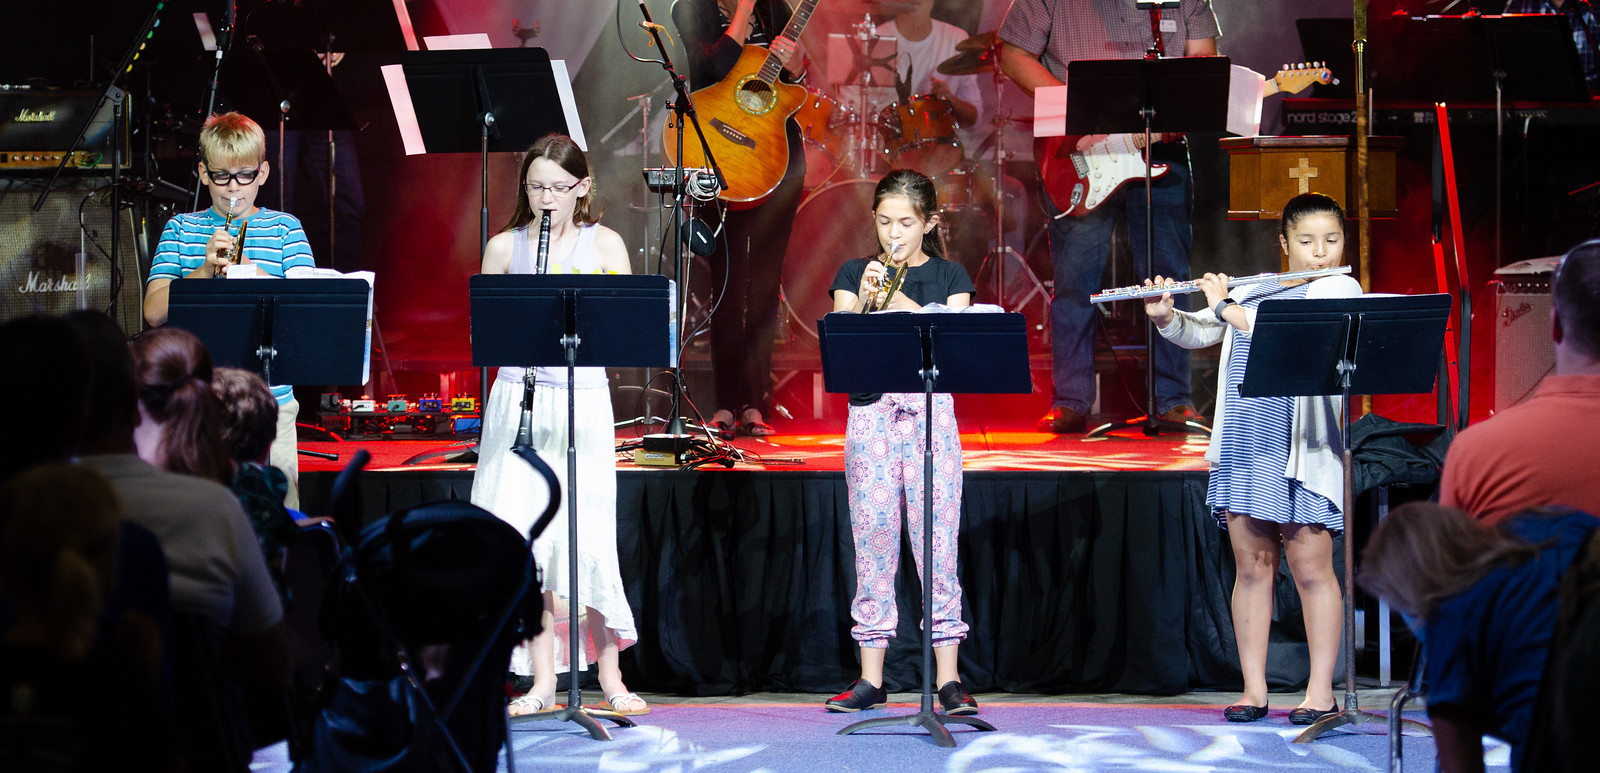 children playing instruments on stage